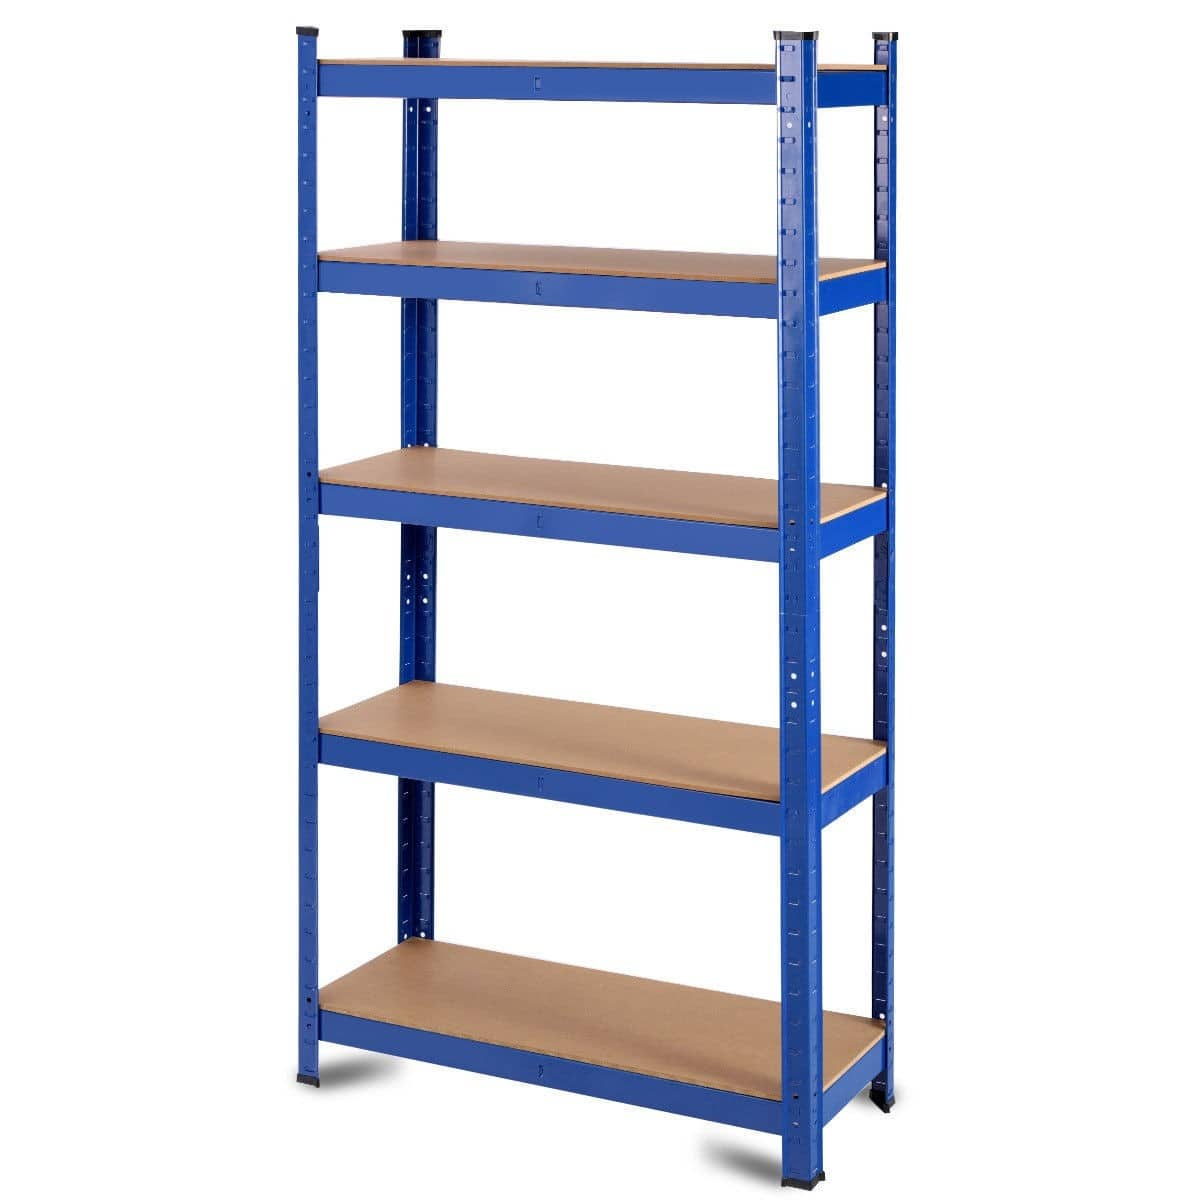 "Costway 29.5"" x 59"" Adjustable 5-Tier 2000 lbs Capacity Tool Shelf - $34.95 + Free Shipping"